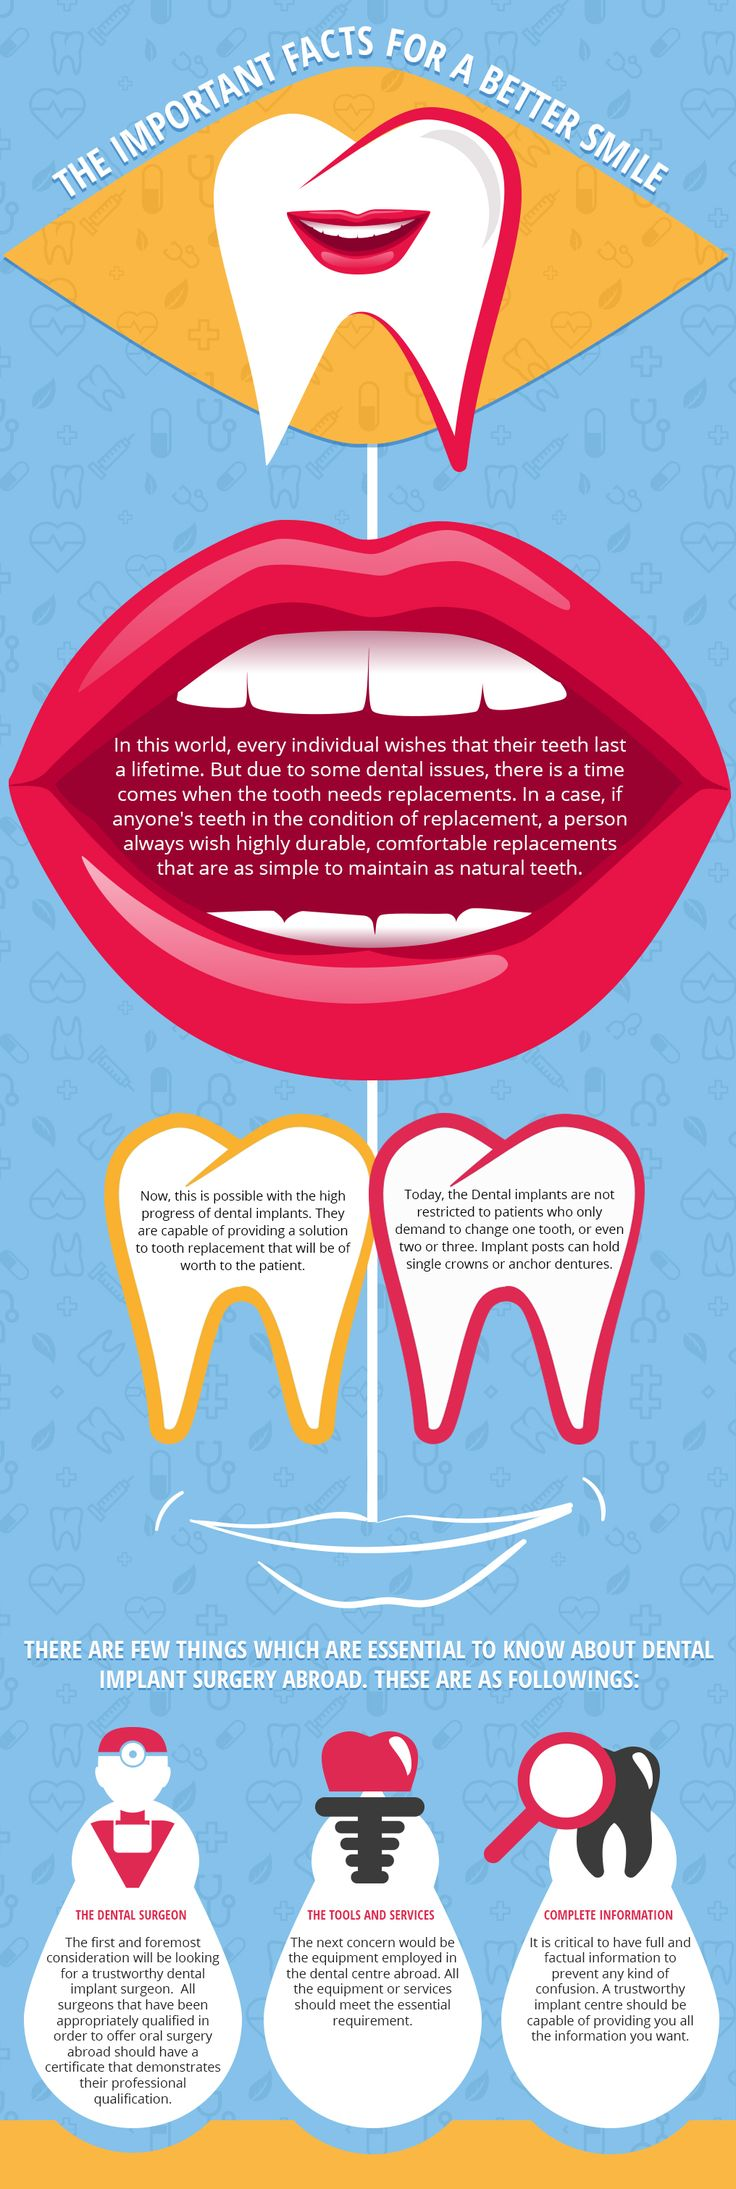 The-Important-Facts-For-A-Better-#Smile--- In this infographic you would learn about the facts as well you will get tips for a better smile.